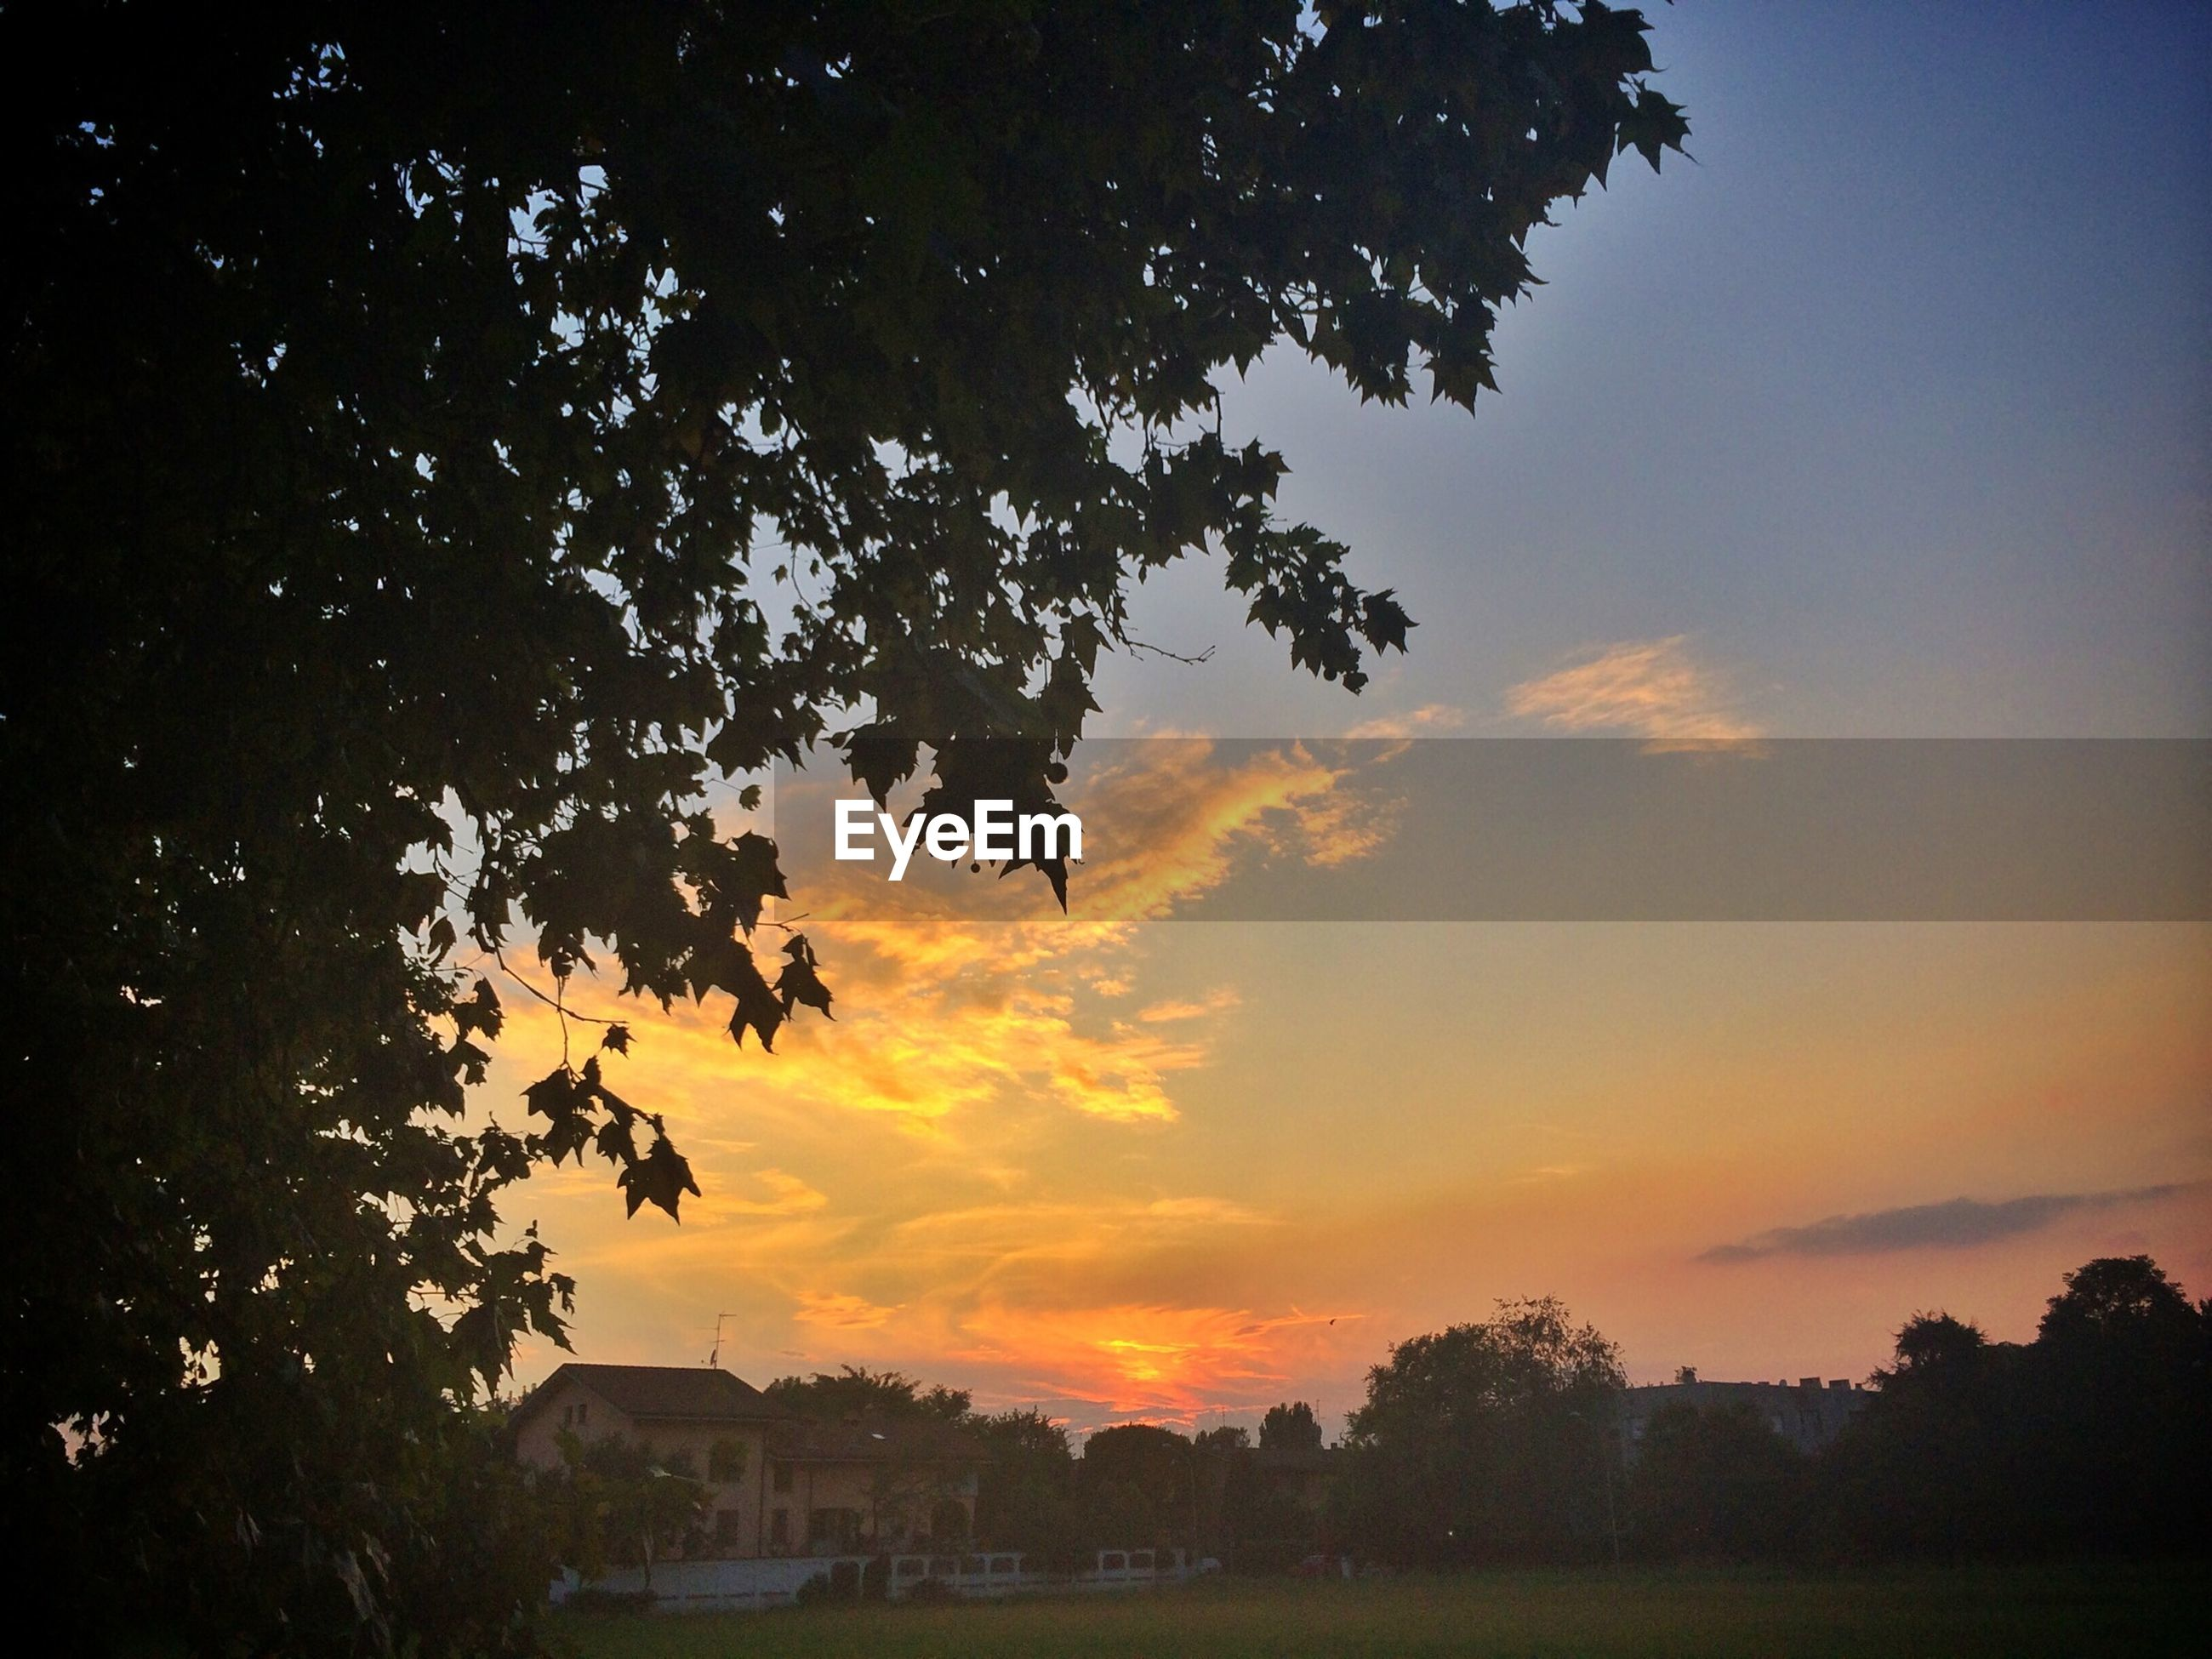 Scenic view of sunset over houses and trees on grassy field